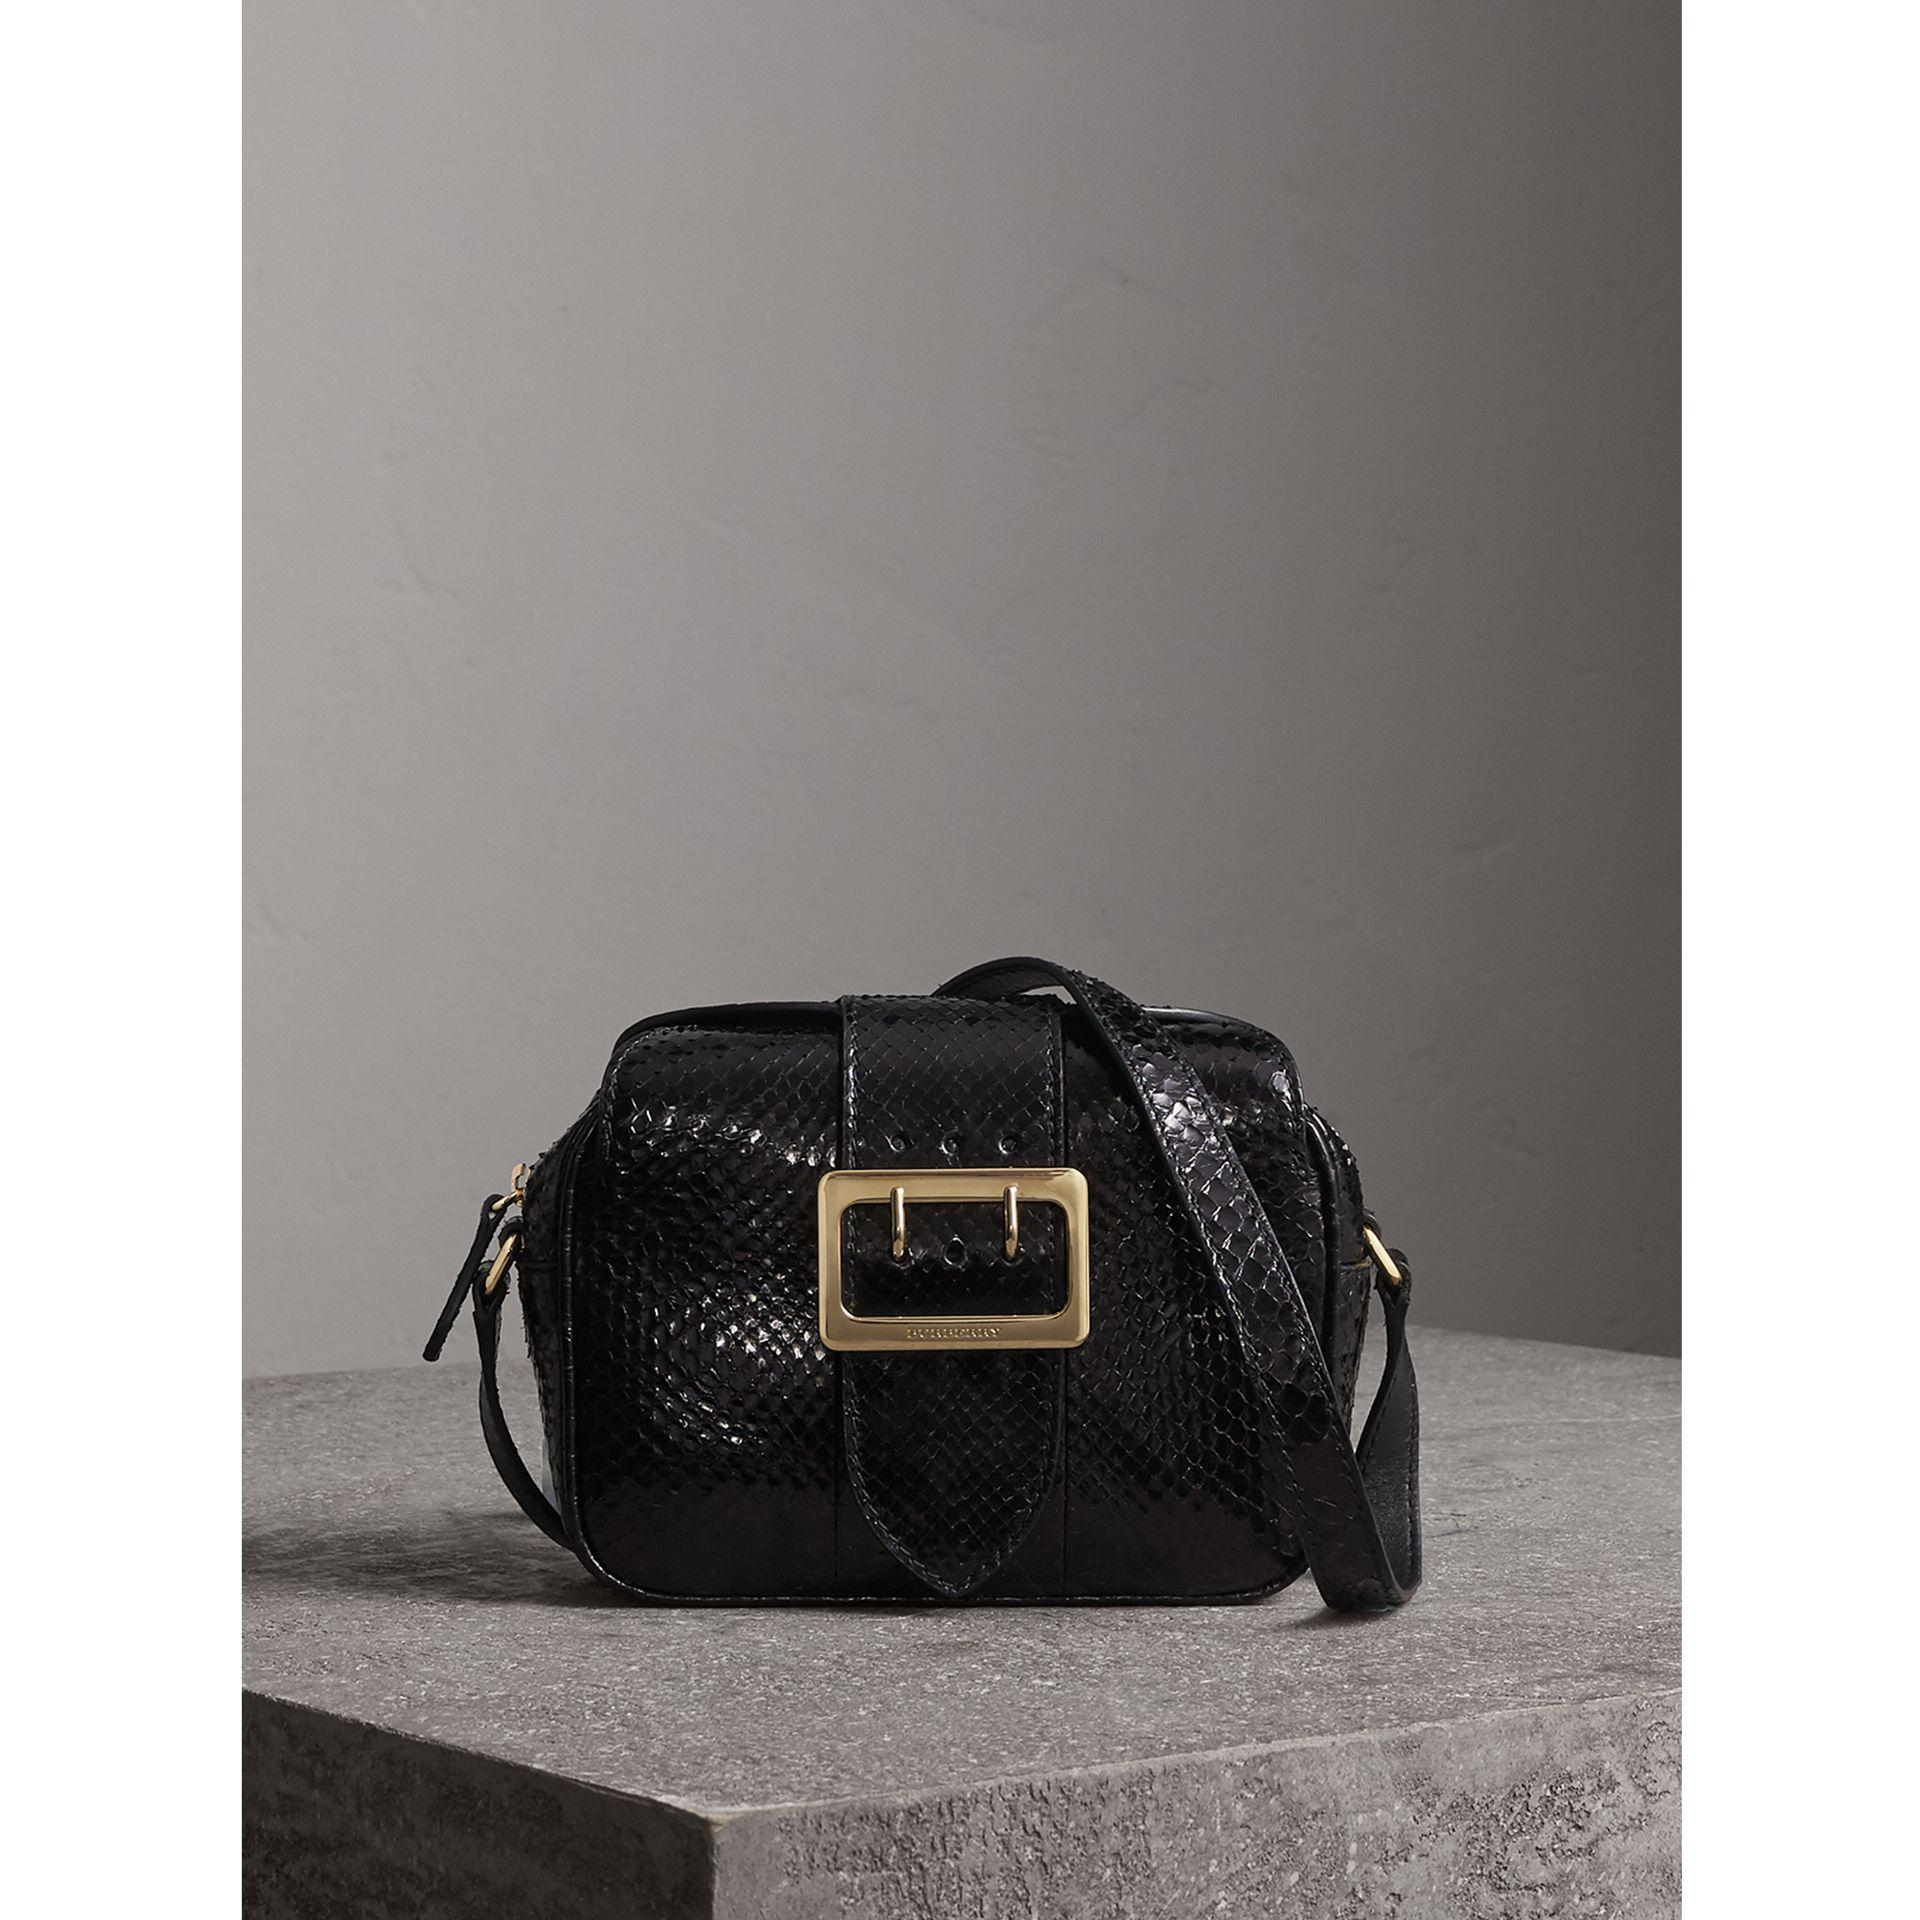 3a89d7bb5fc9 Burberry The Small Buckle Crossbody Bag In Python in Black - Lyst